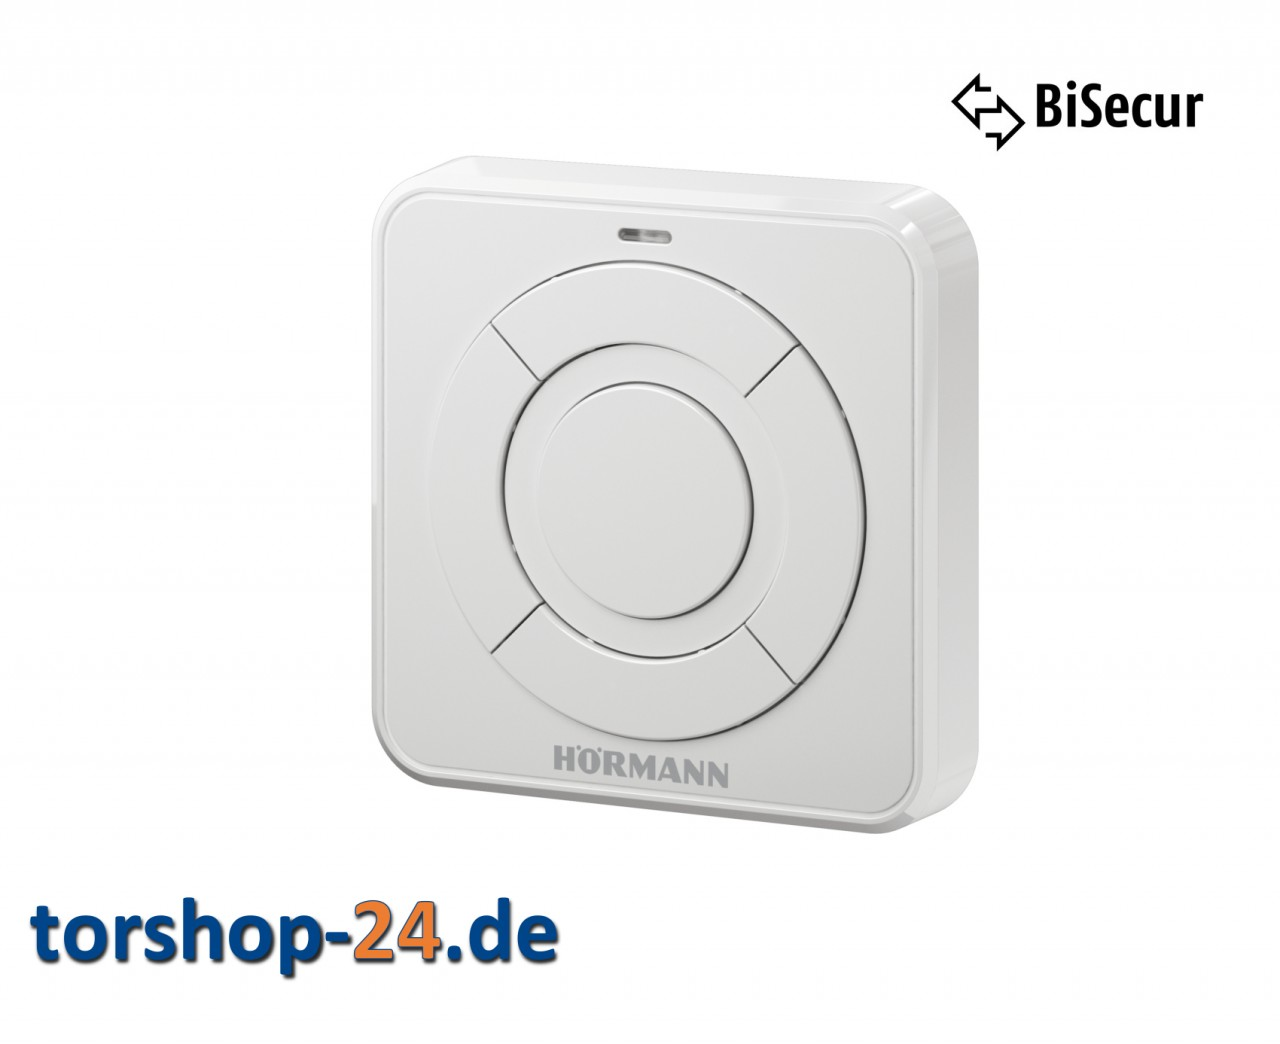 Hörmann Funk-Innentaster FIT 5 BiSecur SmartHome